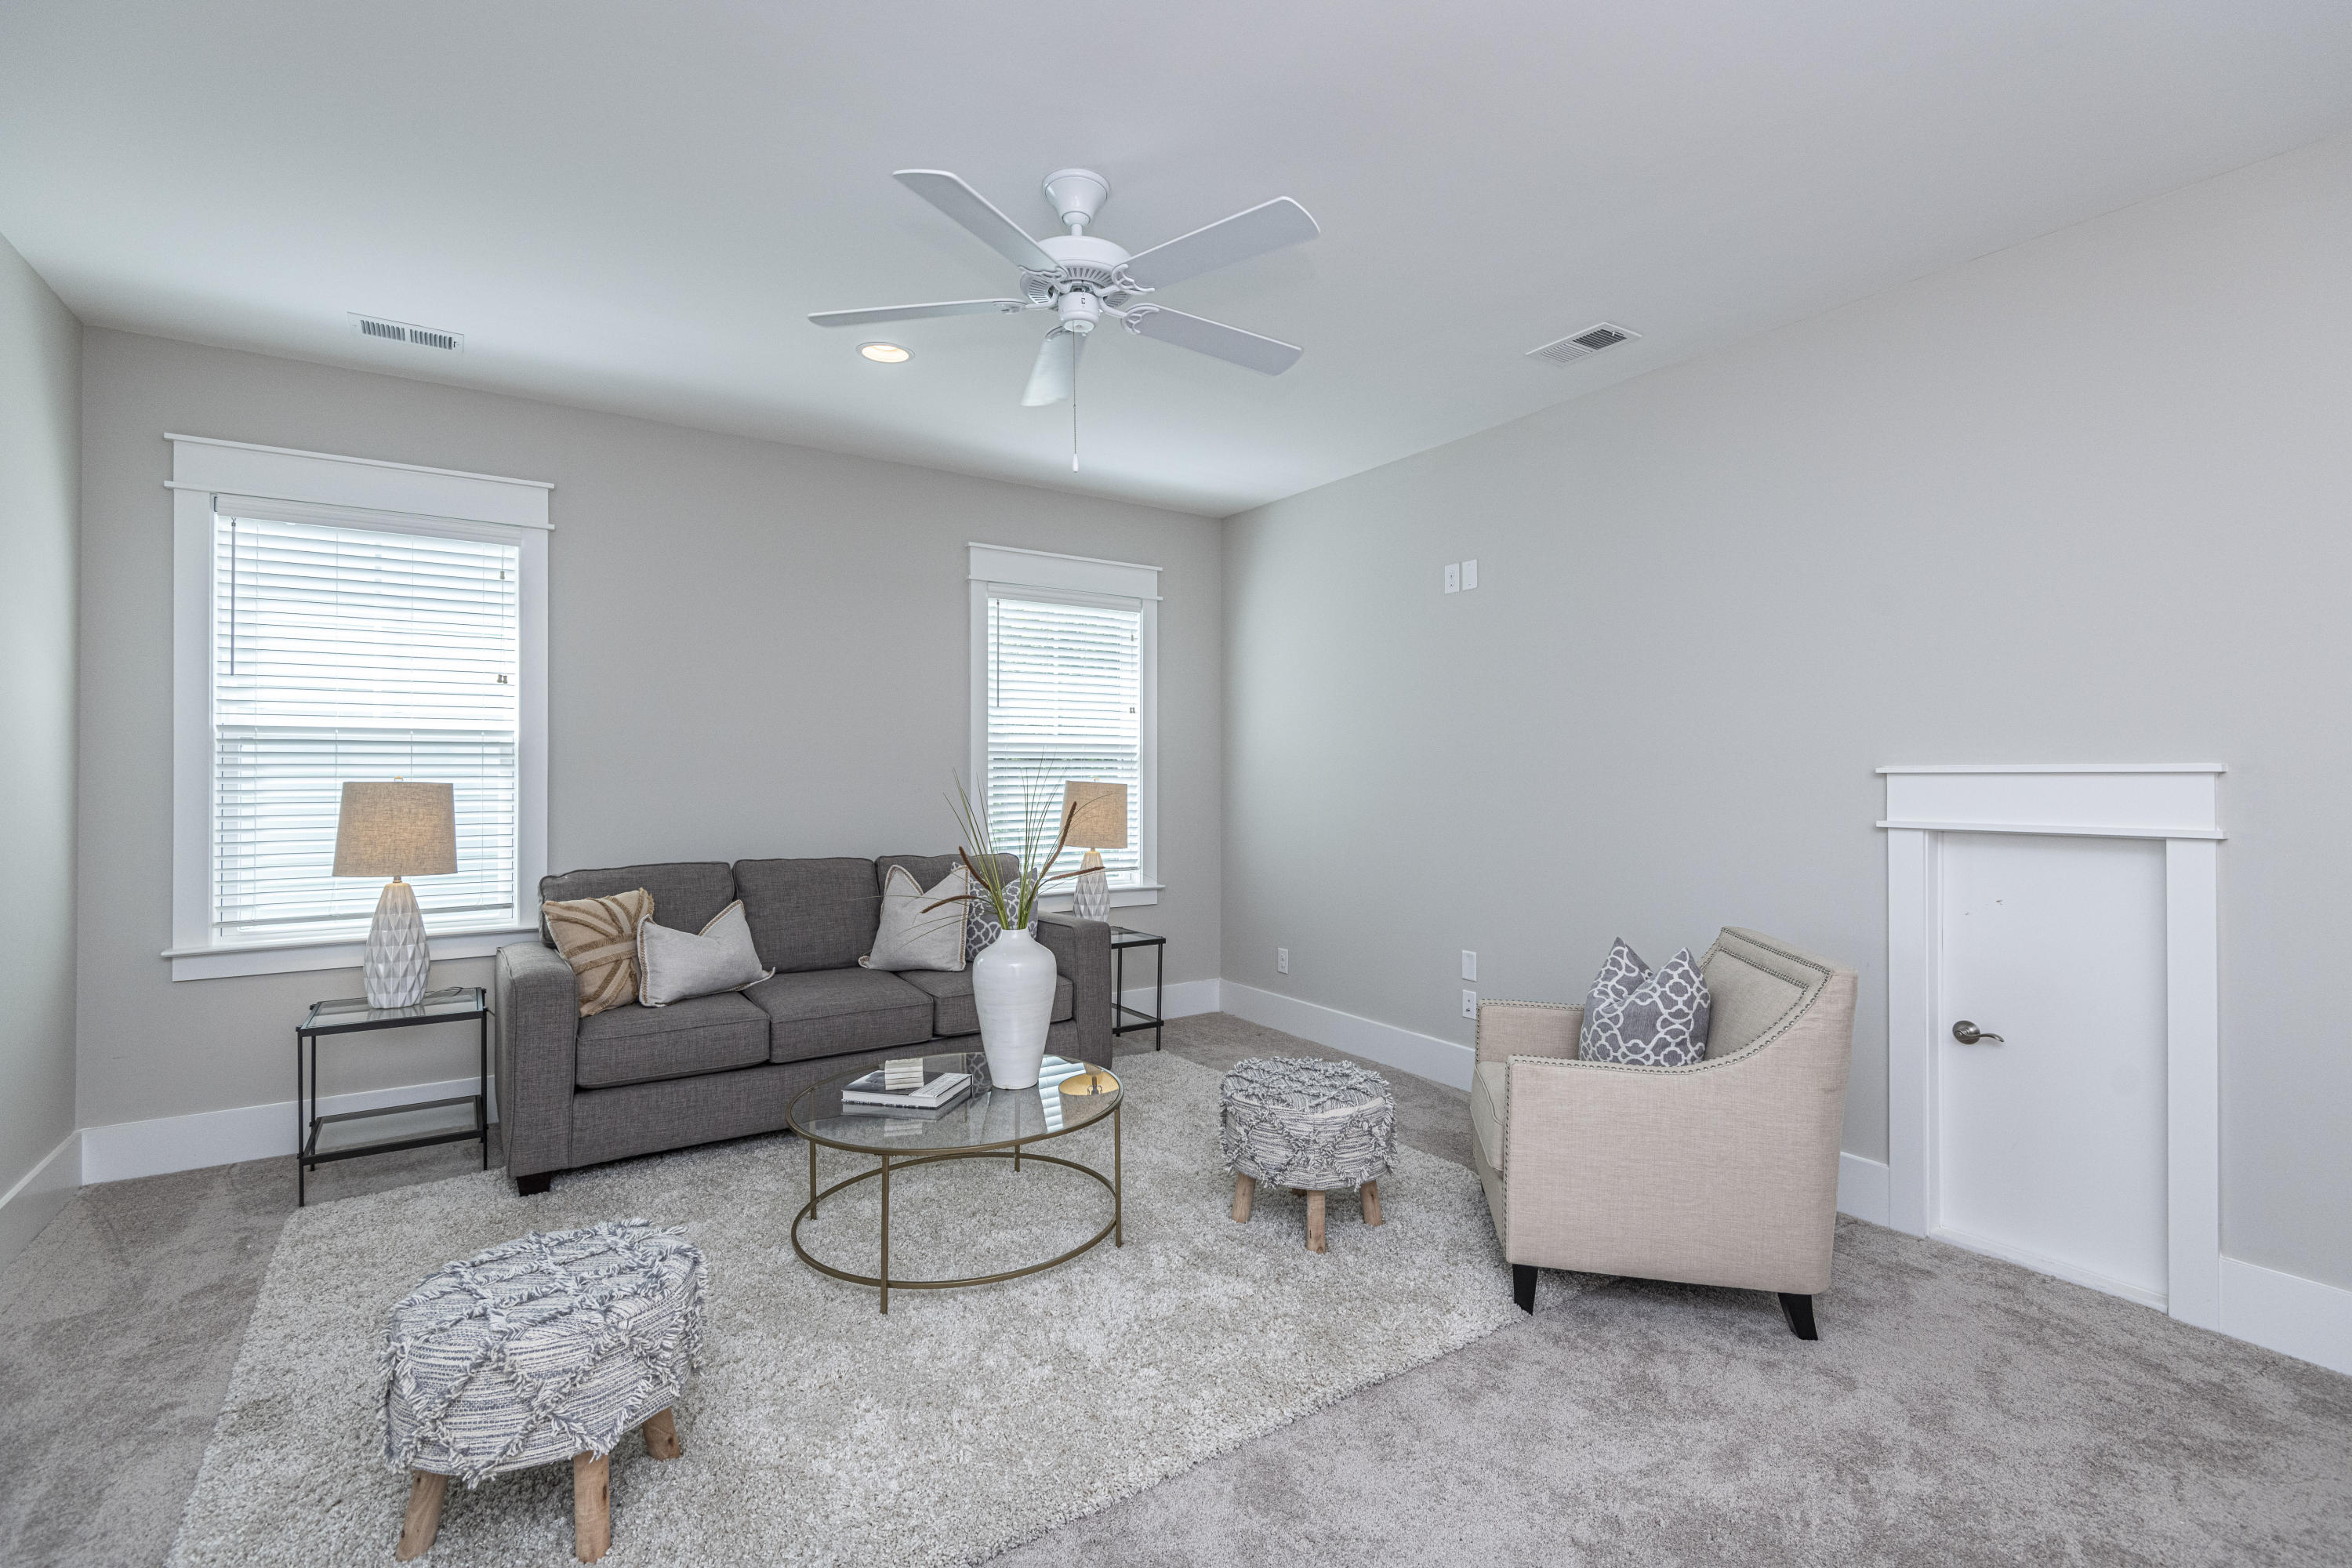 Dunes West Homes For Sale - 2854 Dragonfly Circle, Mount Pleasant, SC - 19